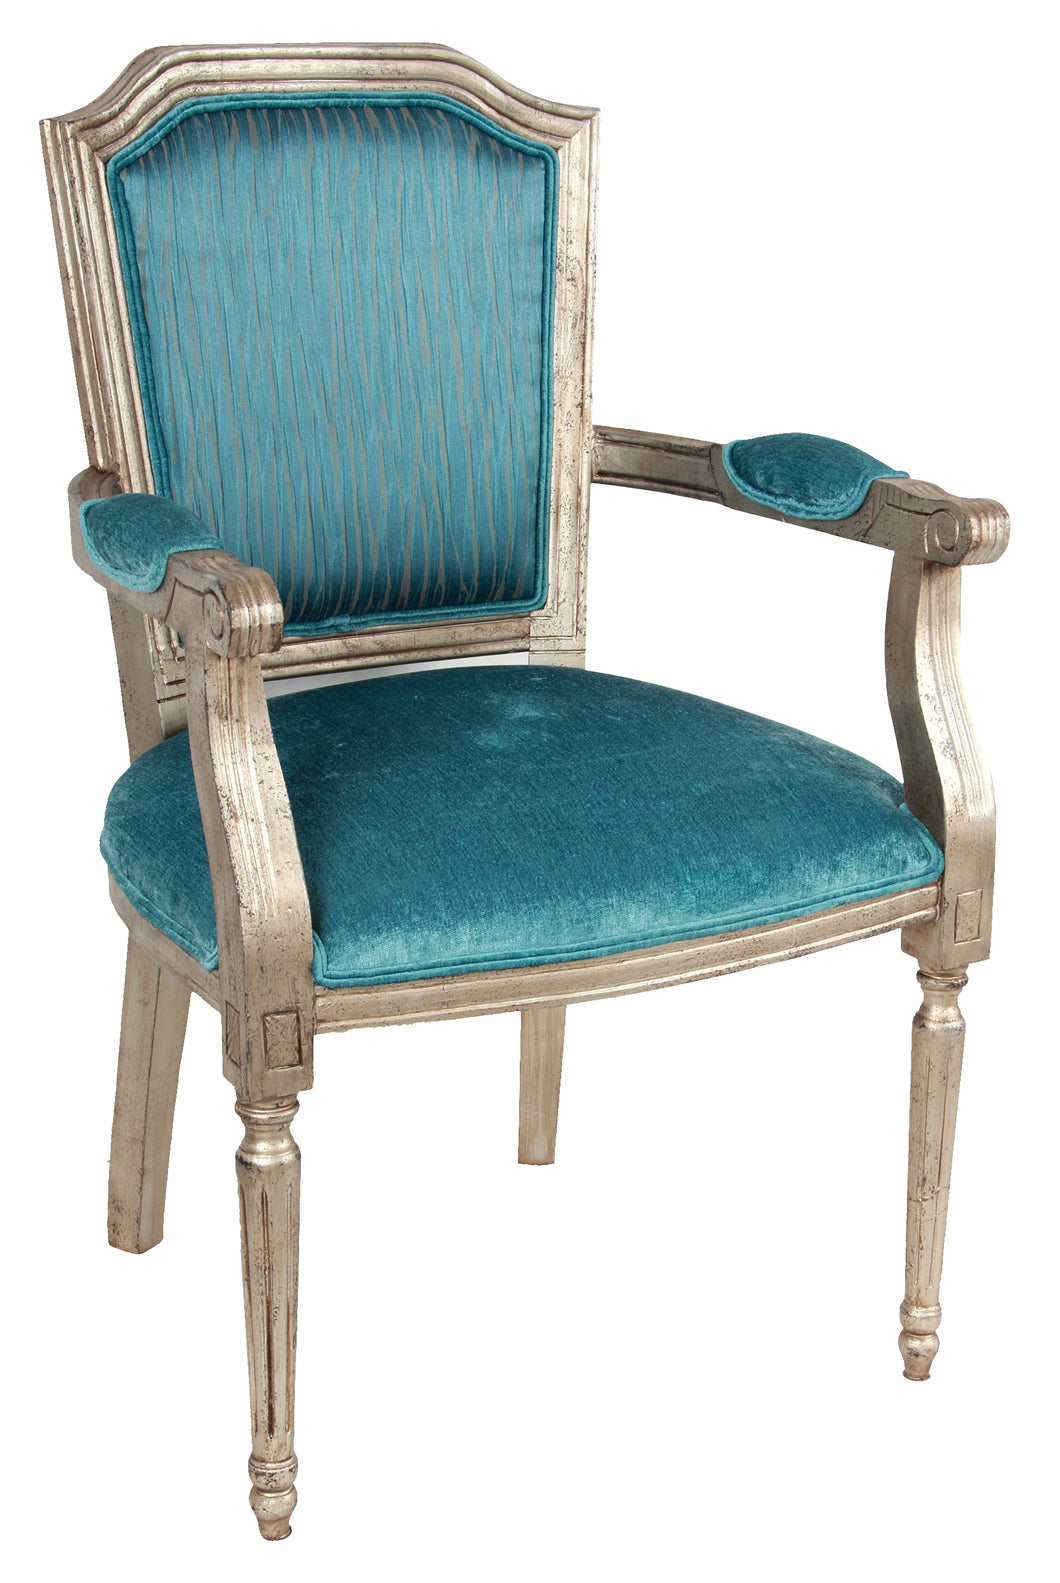 Turquoise Accent Chair  sc 1 st  Imagine SK66 & Turquoise Accent Chair u2013 Imagine SK66